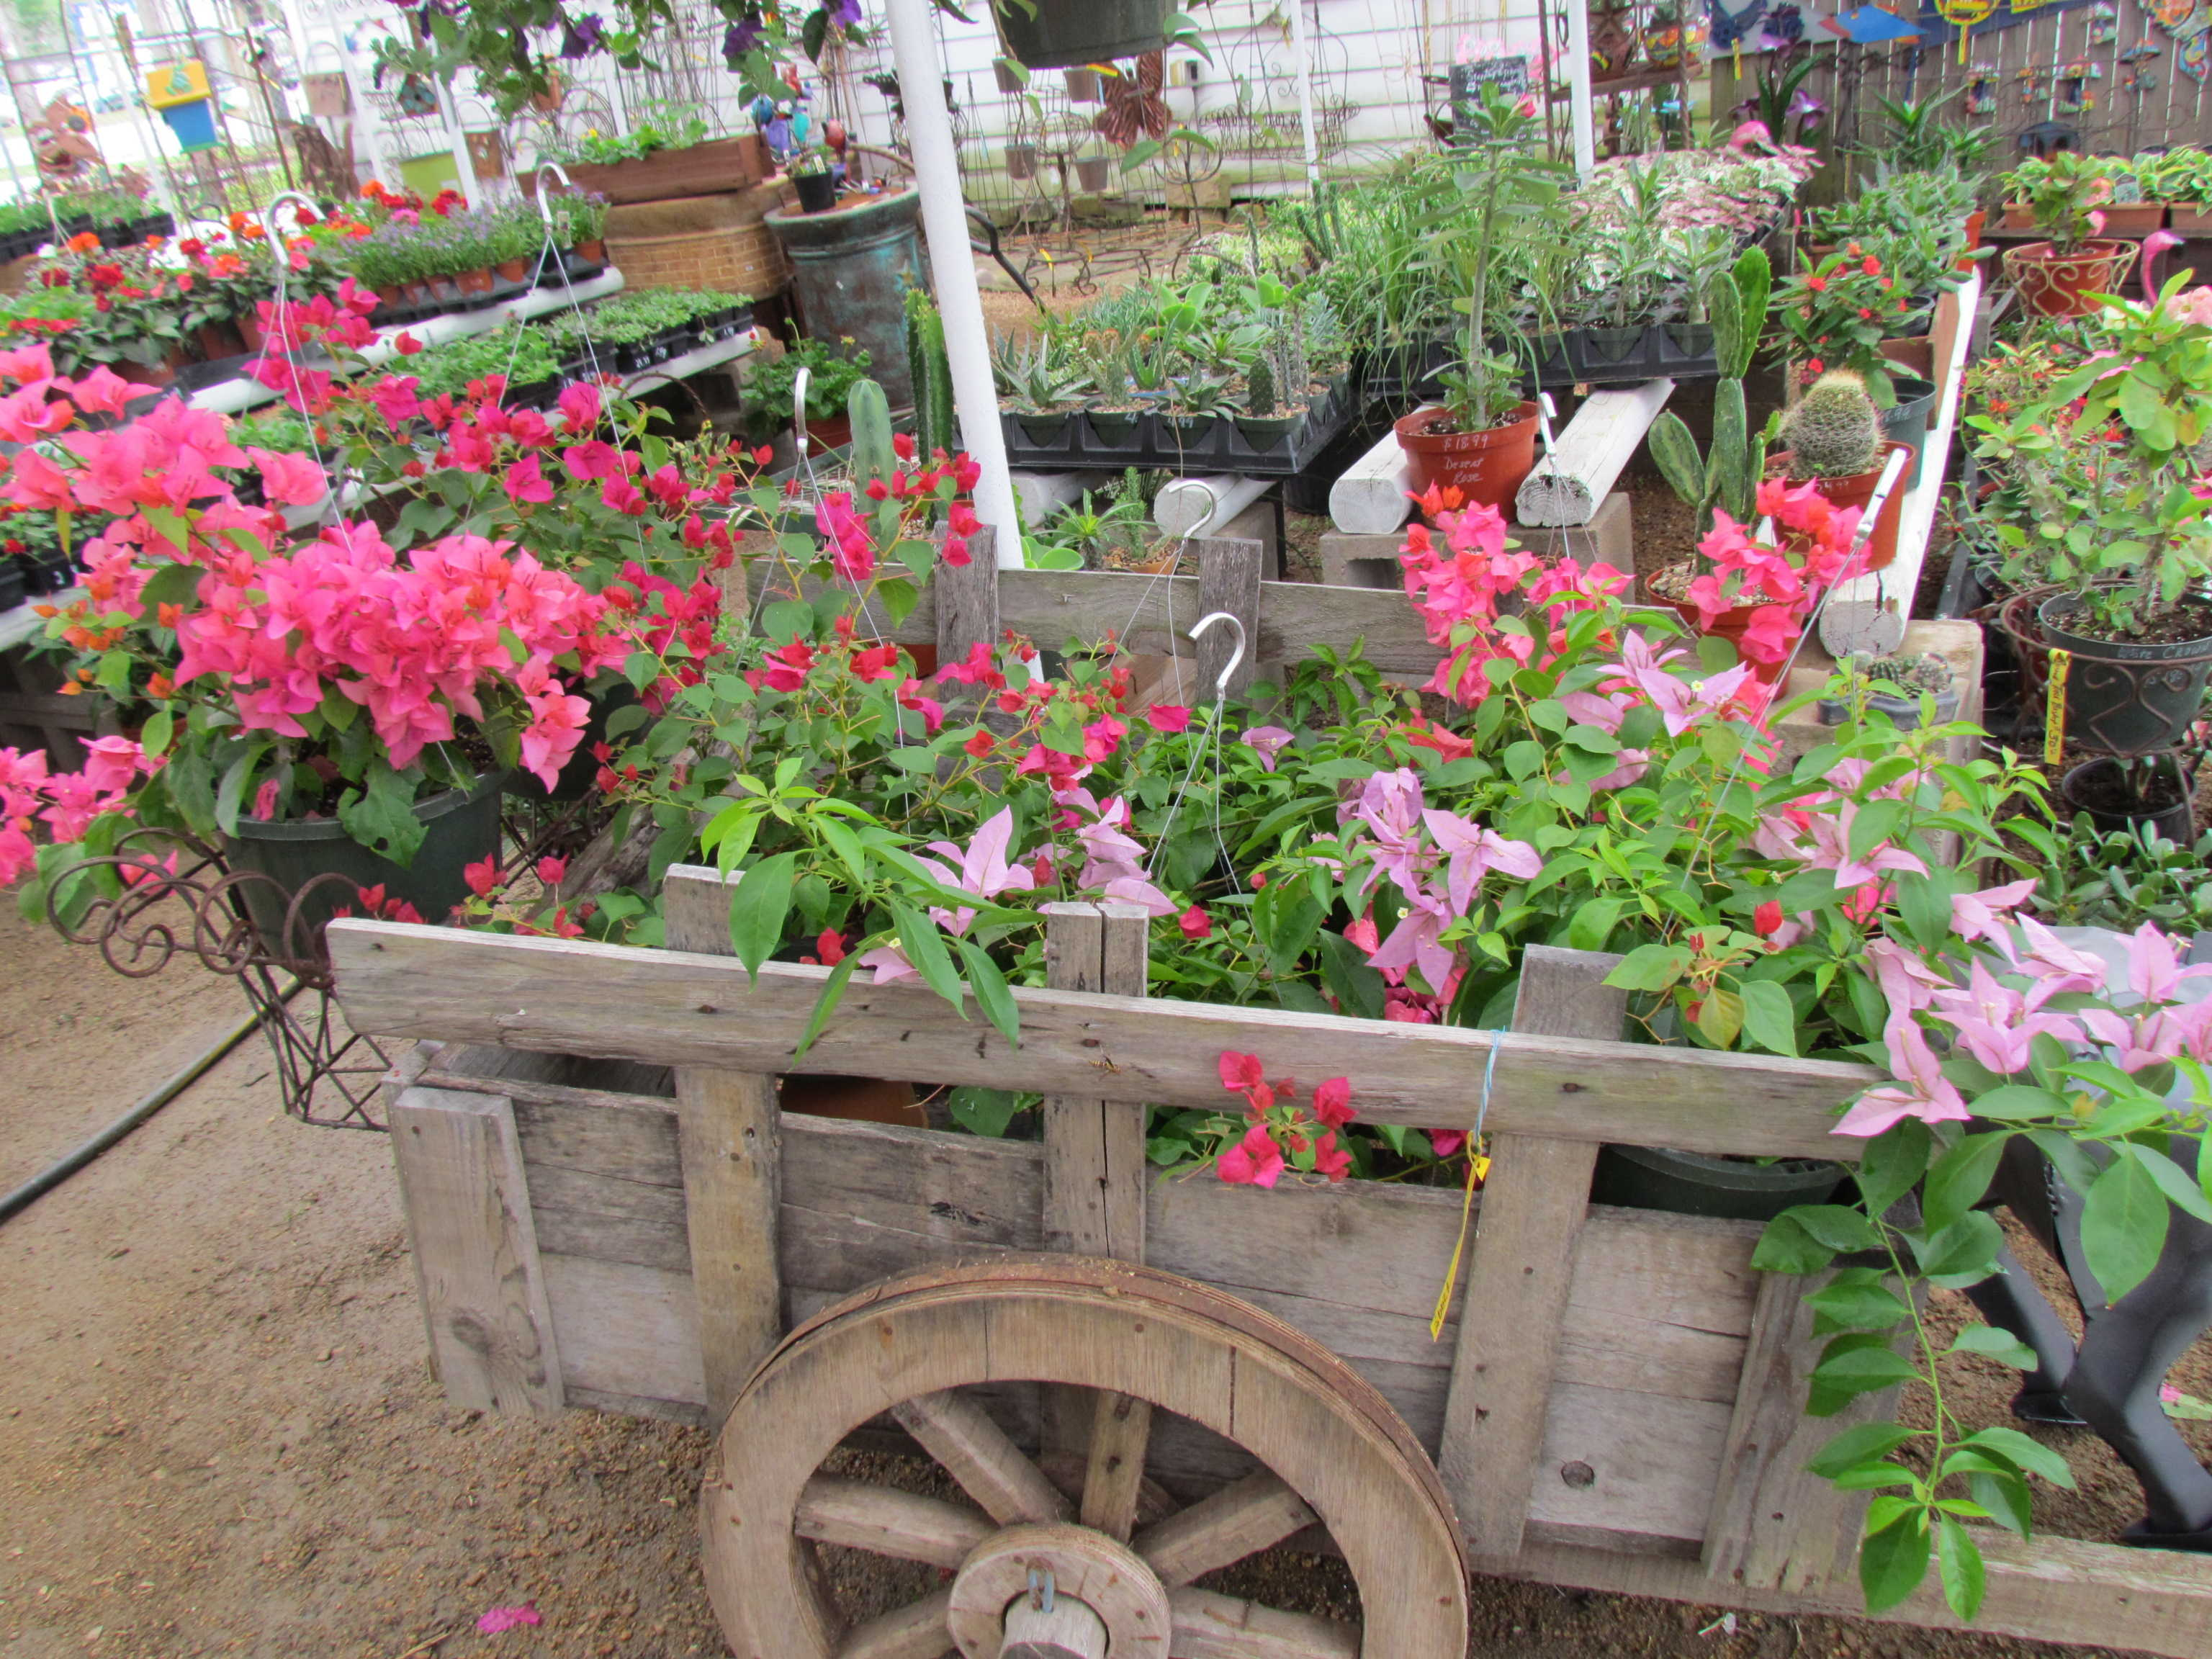 Bougainvillea hanging baskets at J&J Nursery, Spring, TX